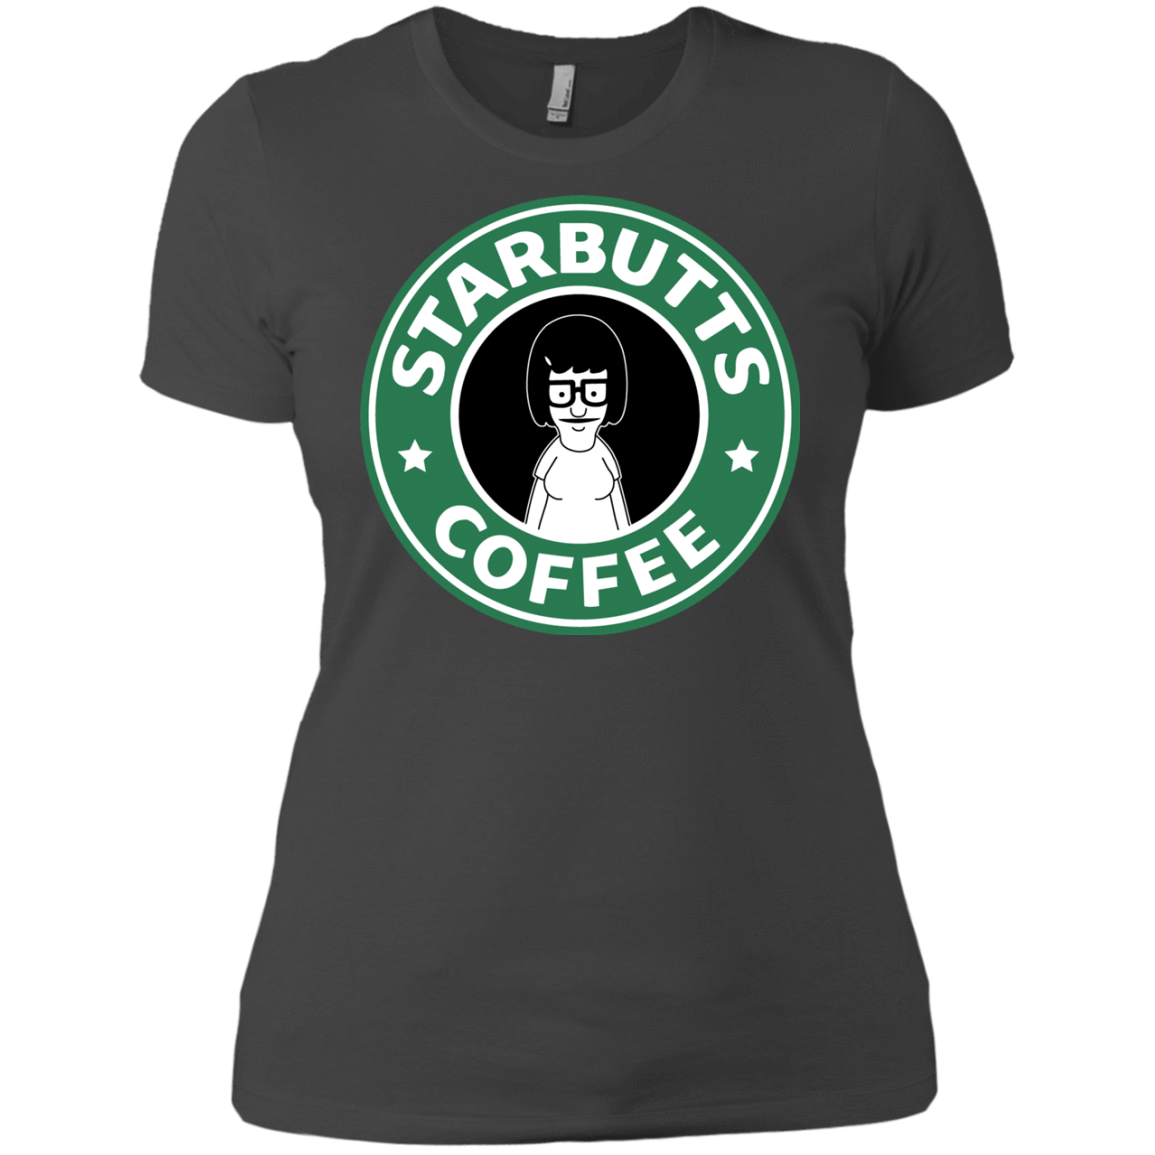 T-Shirts Heavy Metal / X-Small Starbutts Women's Premium T-Shirt